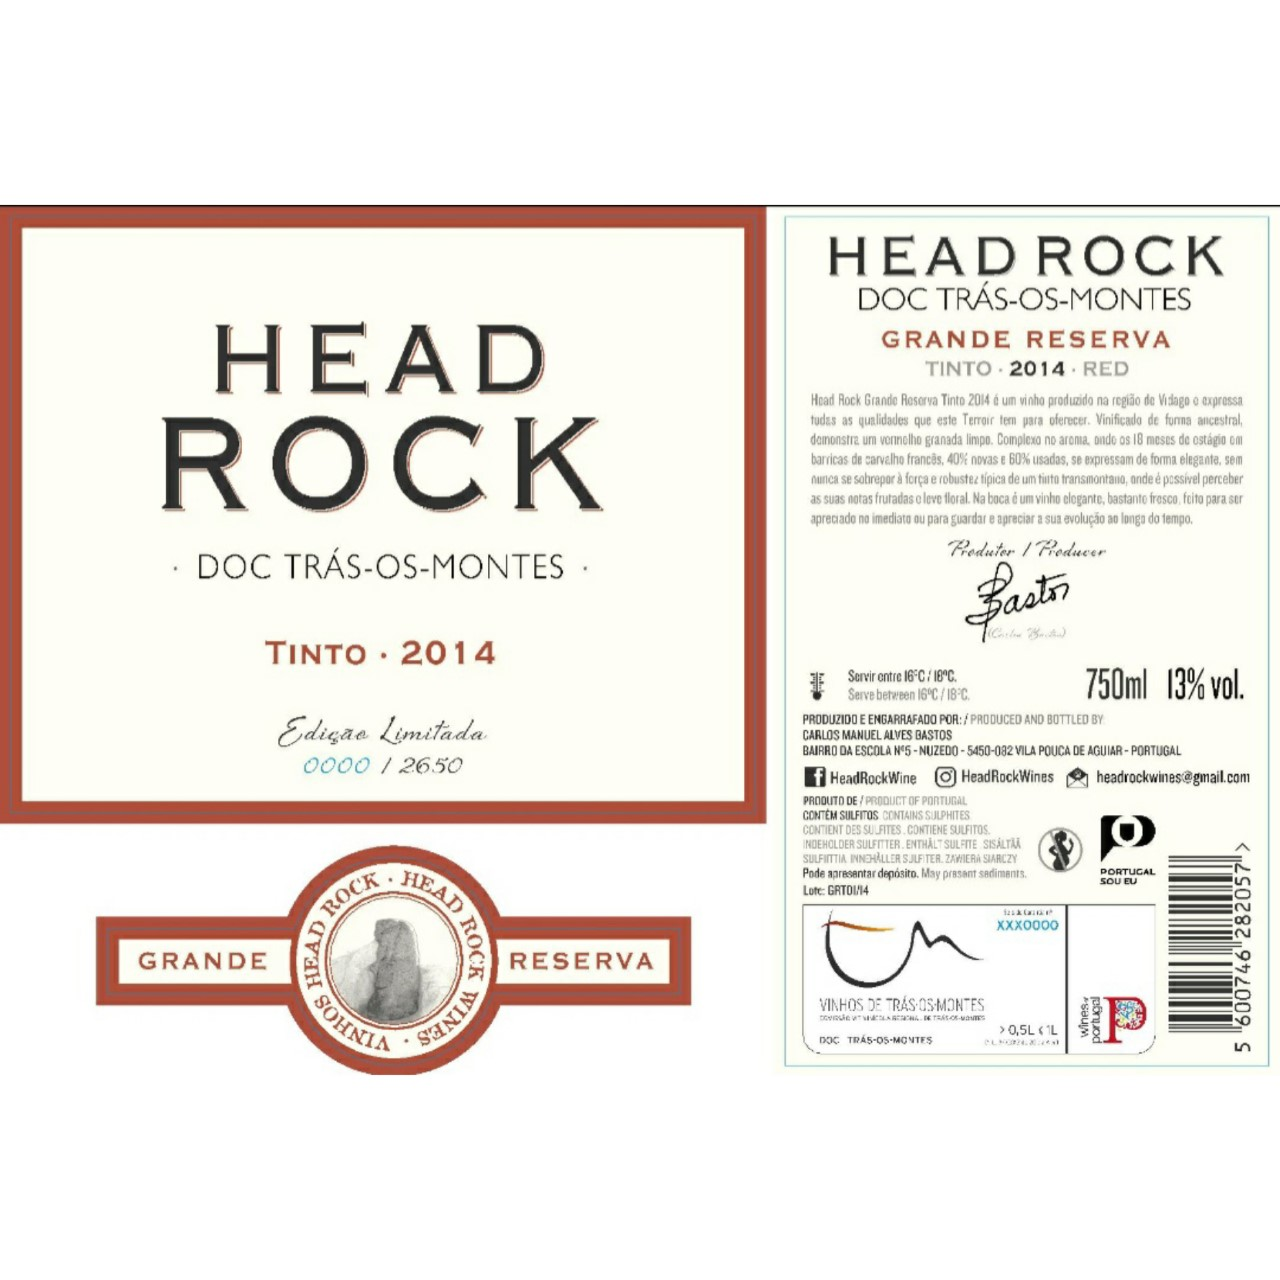 Head Rock Grande Reserva Tinto 2014